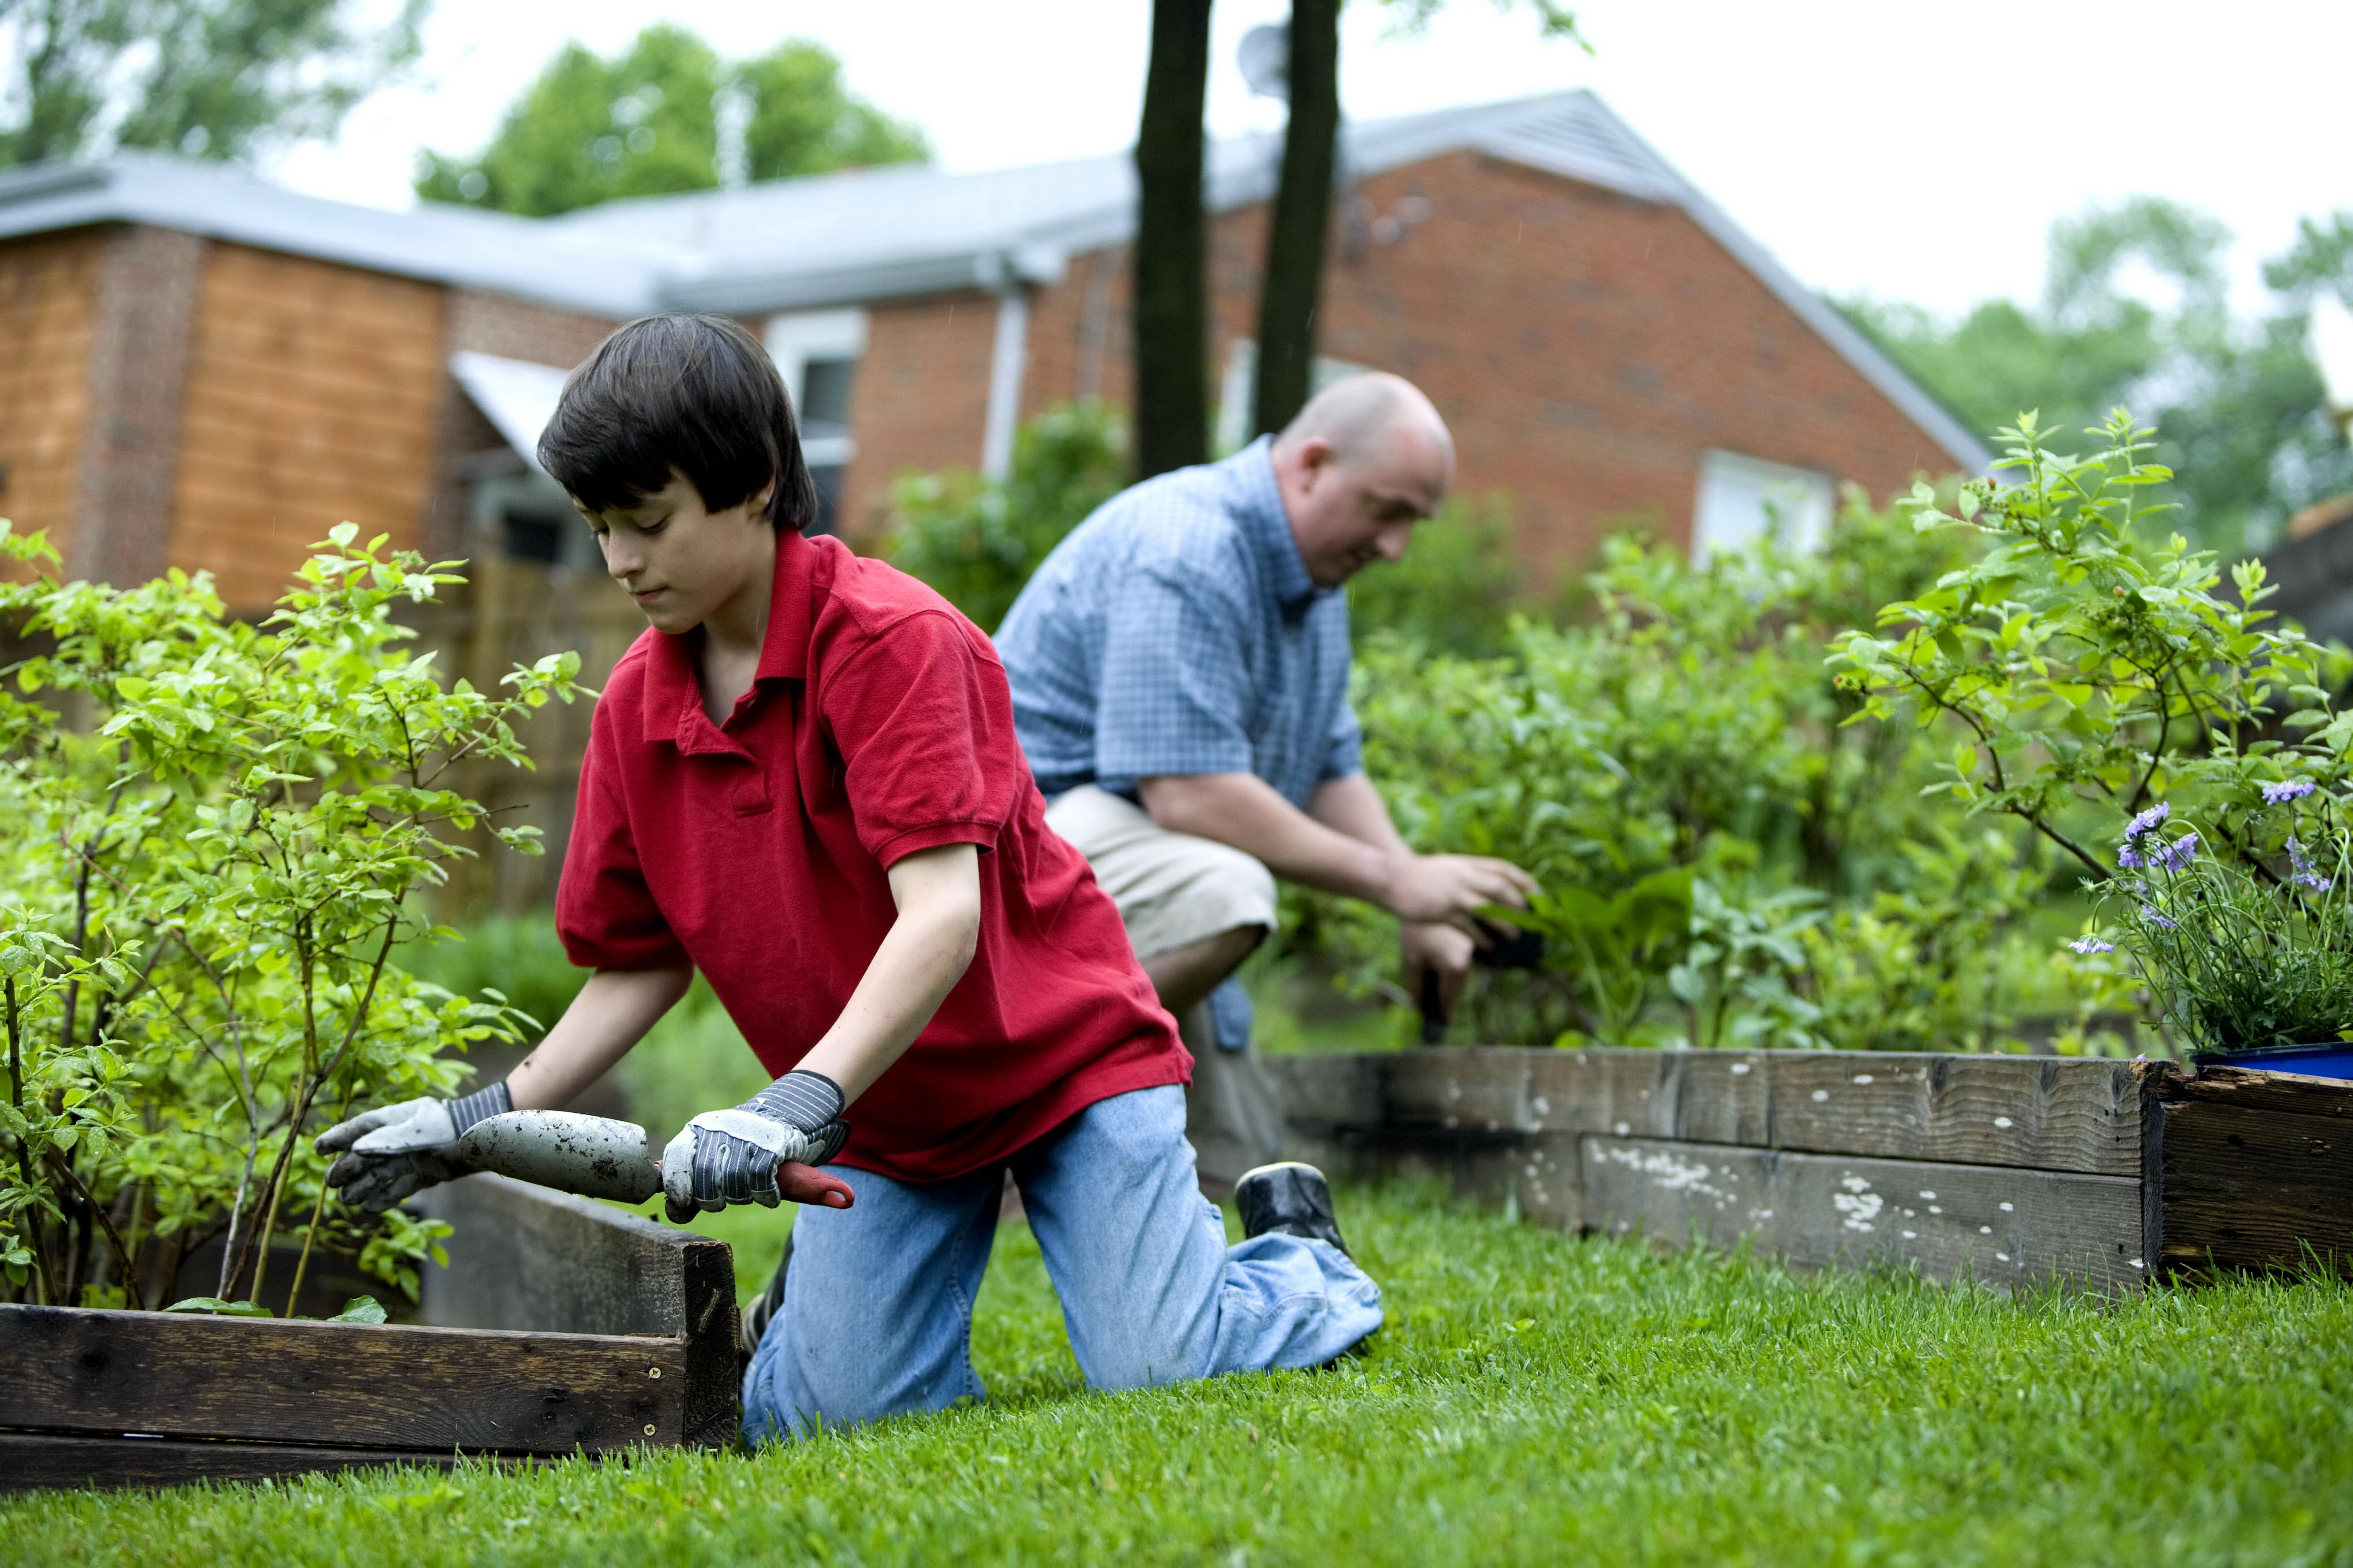 people gardening pictures - HD5530×3686